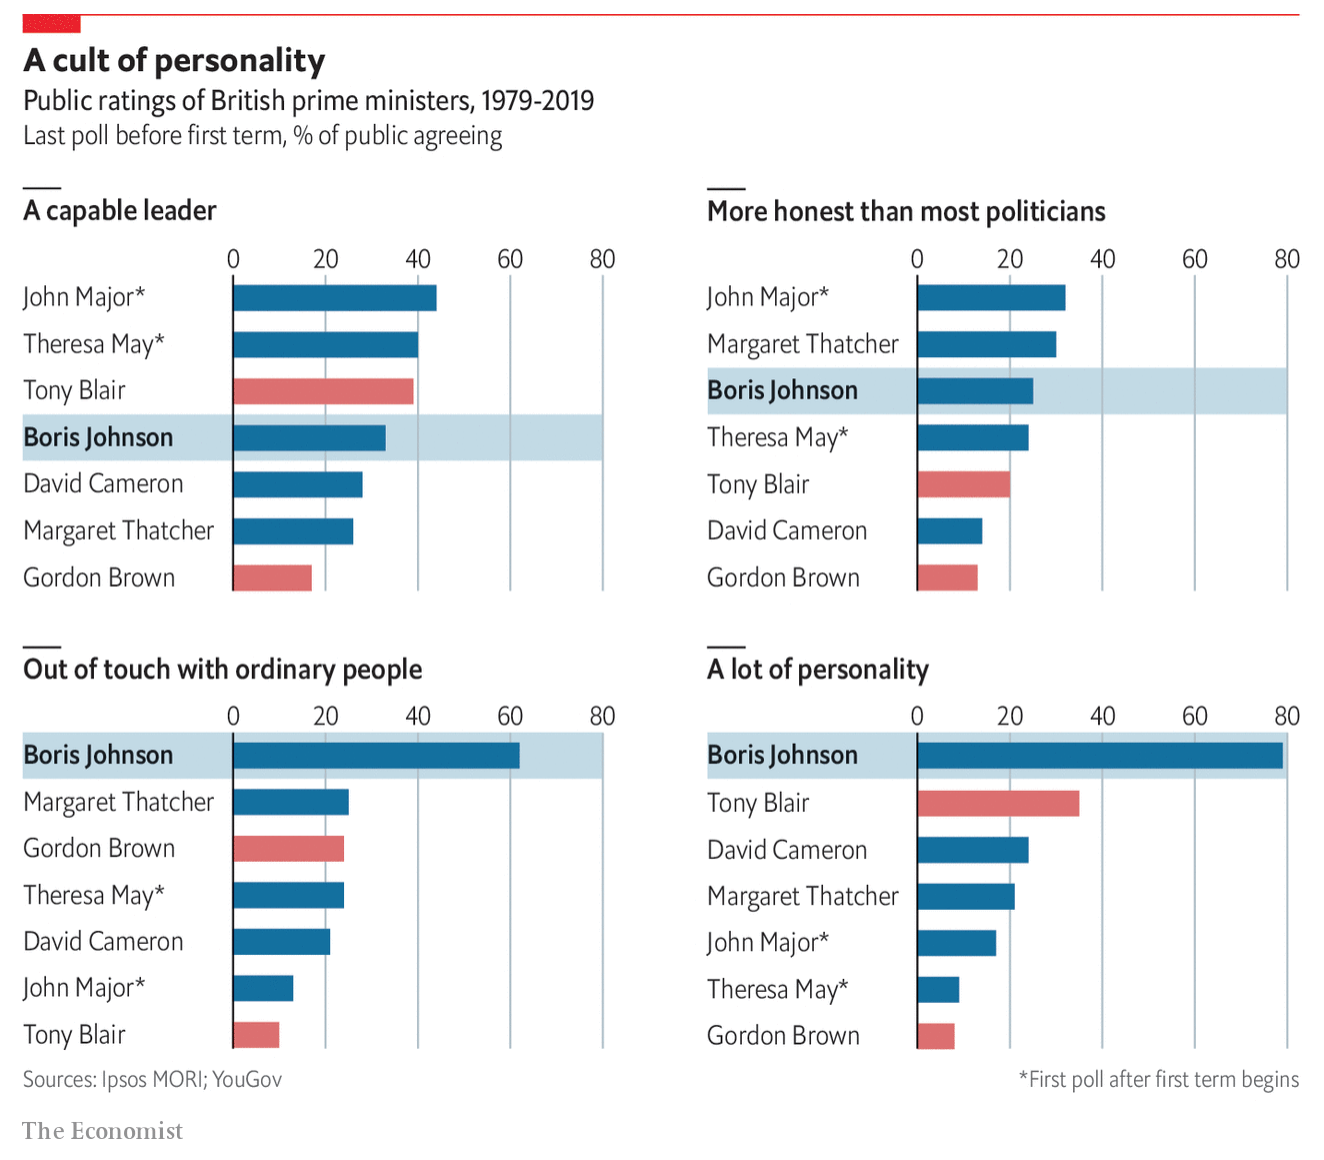 Boris rates higher than many previous prime ministers before they came to power